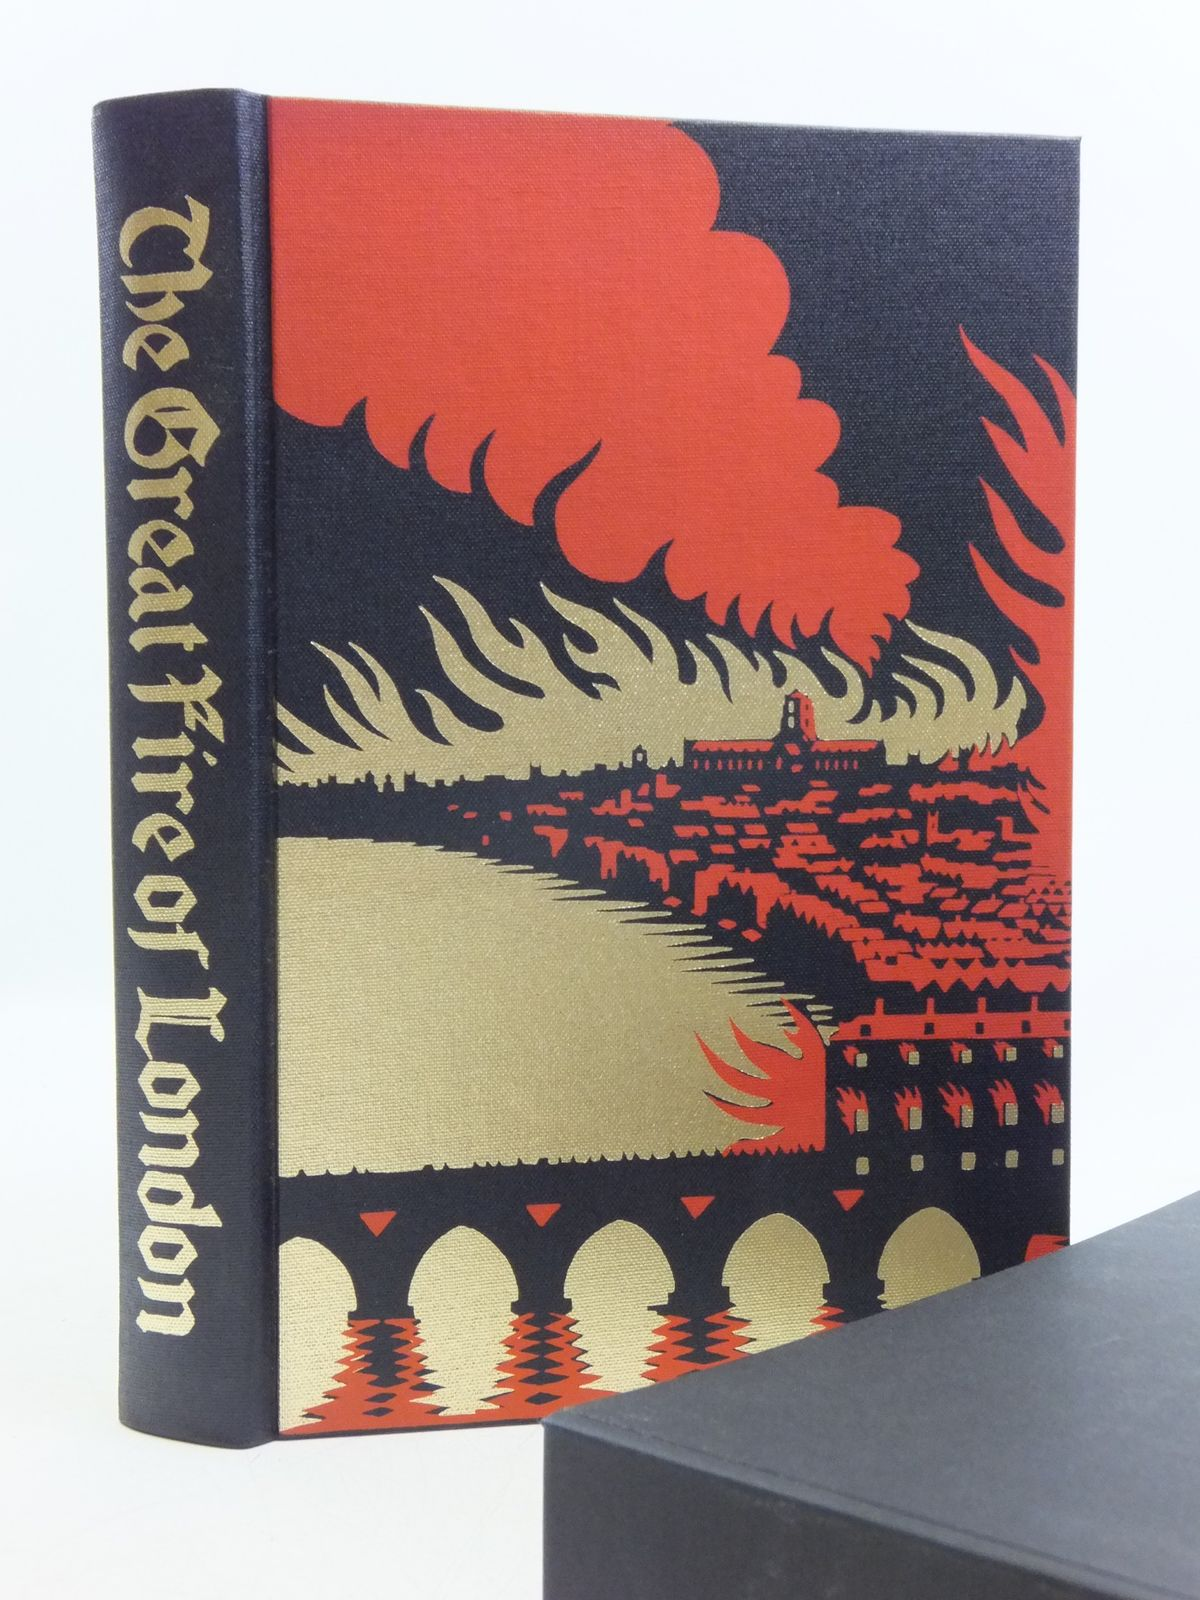 Photo of THE GREAT FIRE OF LONDON IN 1666 written by Bell, Walter George published by Folio Society (STOCK CODE: 2120436)  for sale by Stella & Rose's Books